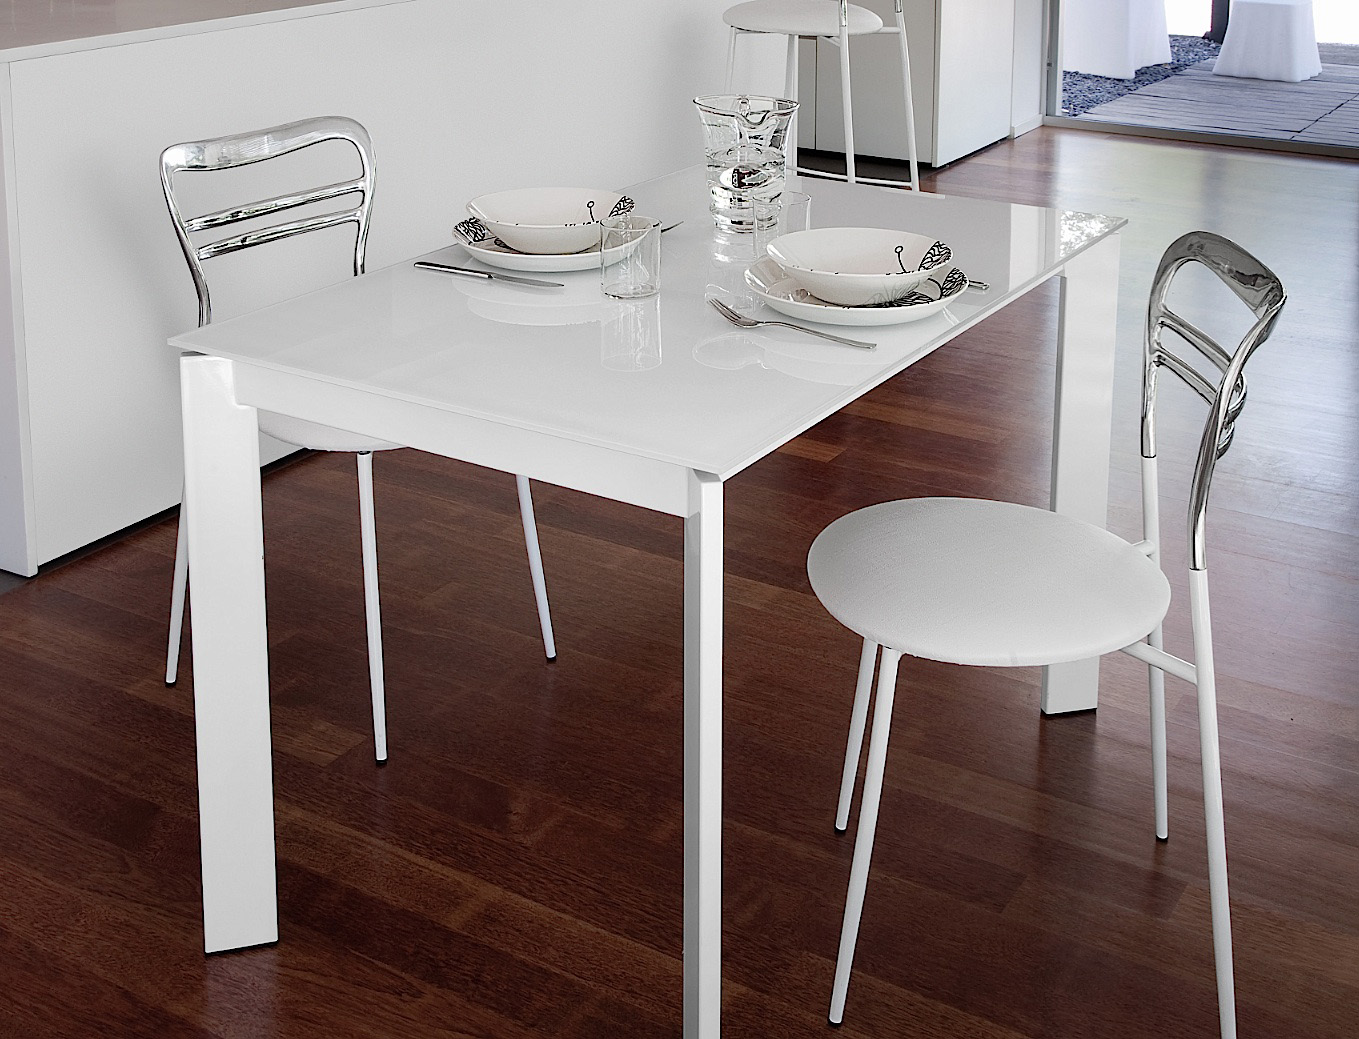 Maximo-110 Dining Table-31432